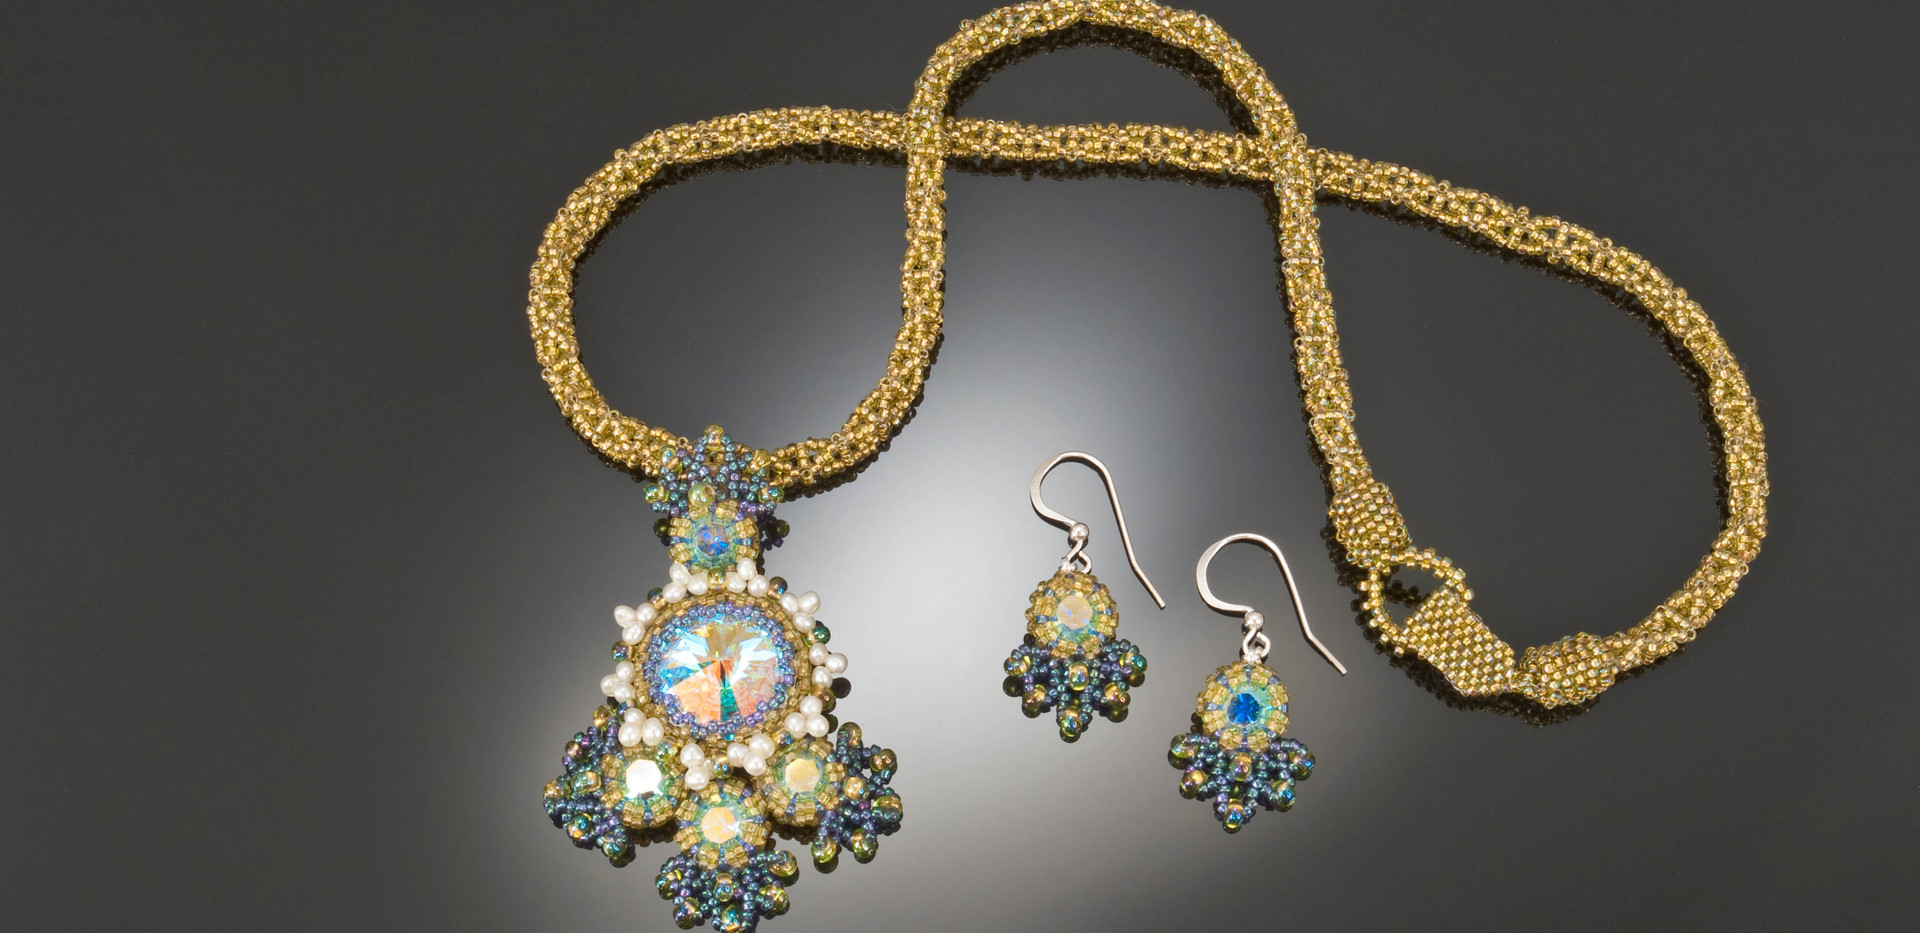 Go For Baroque Necklace and Earrings